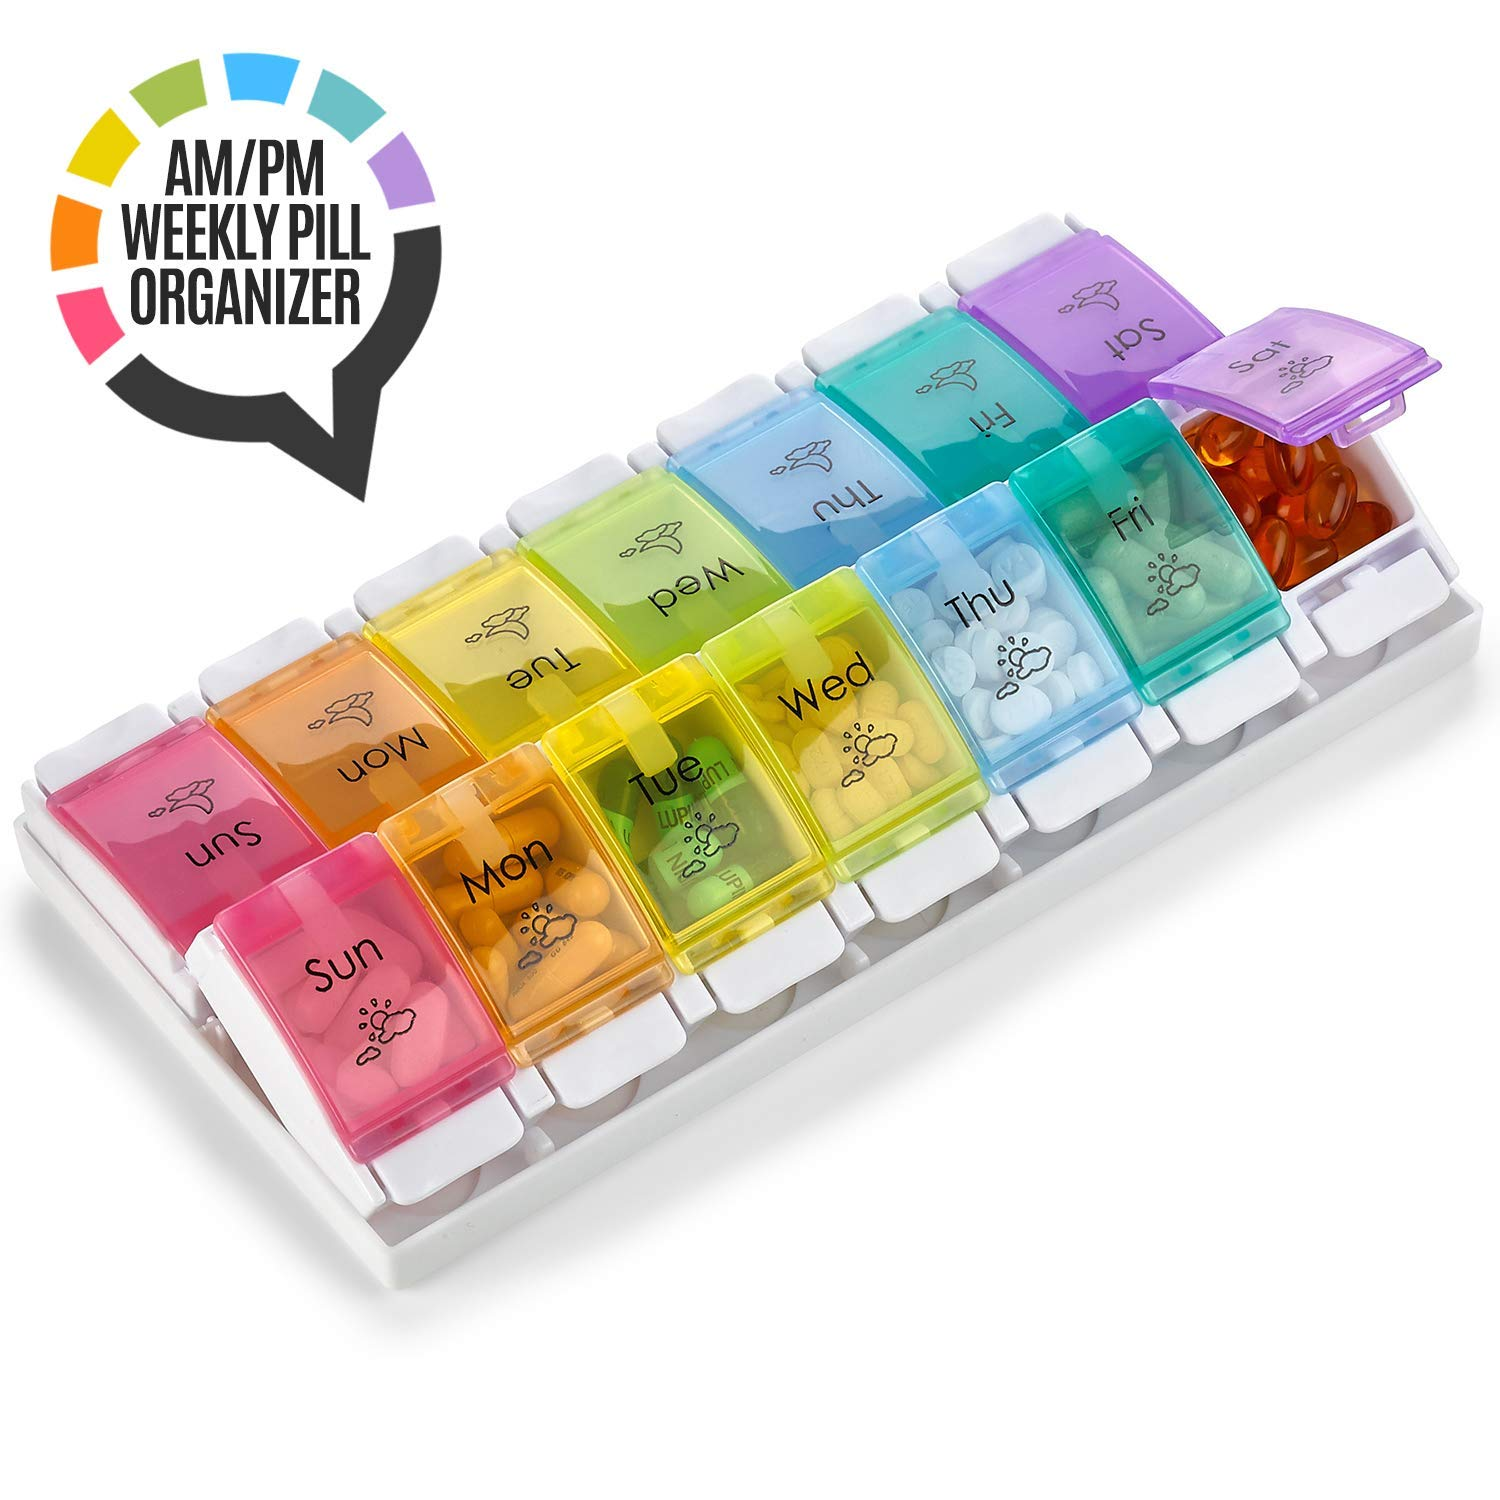 7 Day AM PM Pill Organizer - with Push Button Assisted Open a Daily Travel Pill Box Case Planner and Large Compartments for Medication Vitamins Fish Oil & Supplements, BPA Free